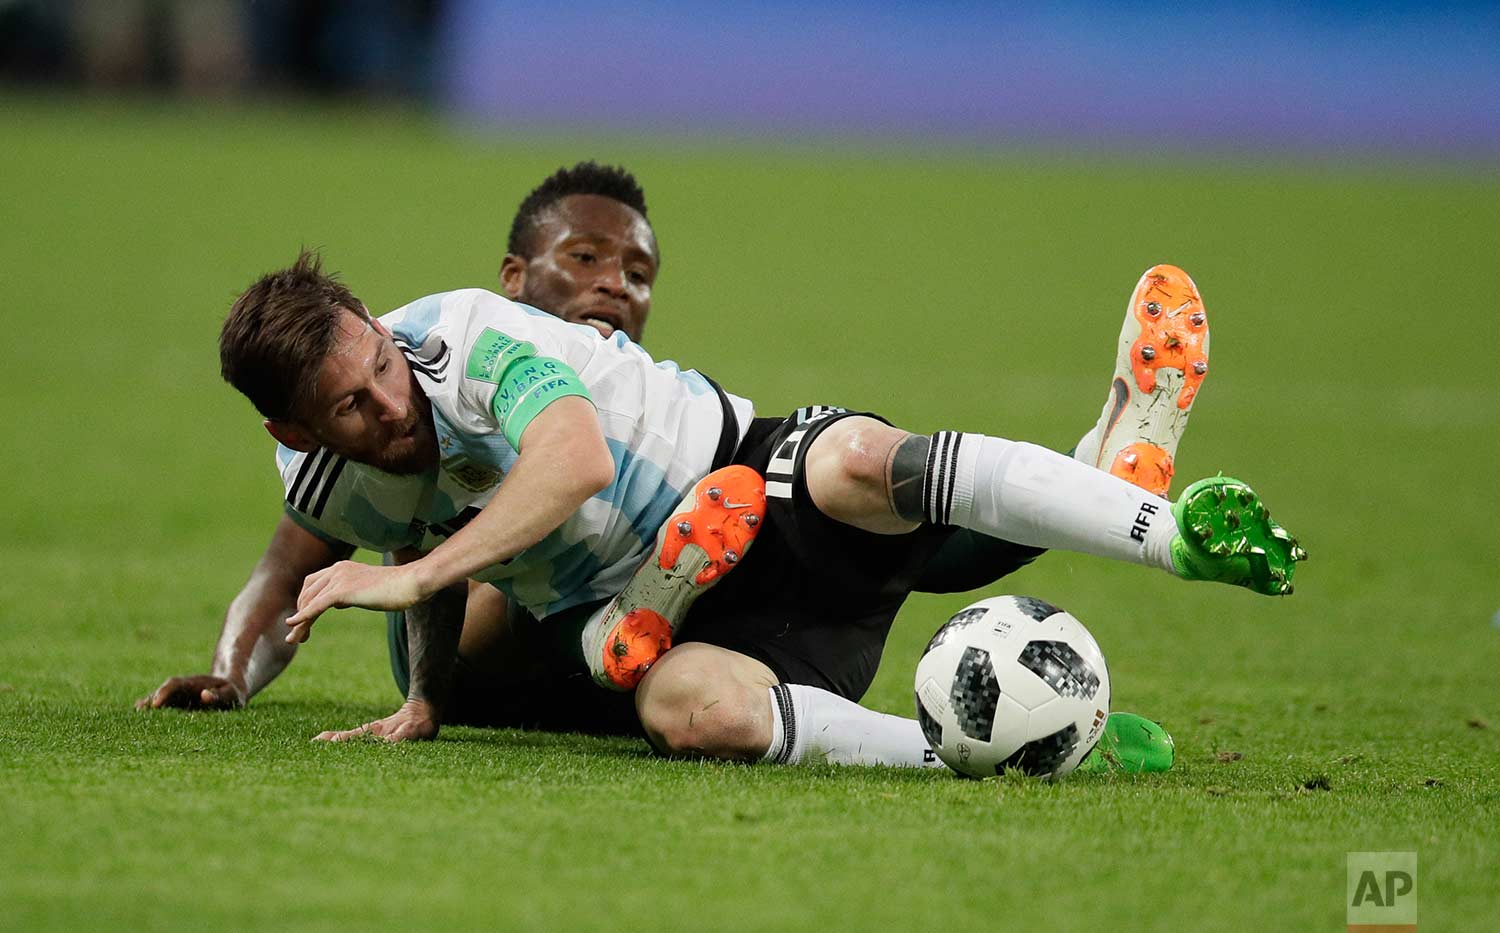 Argentina's Lionel Messi, foreground, and Nigeria's John Obi Mikel compete for the ball during the group D match between Argentina and Nigeria at the 2018 soccer World Cup in the St. Petersburg Stadium in St. Petersburg, Russia, Tuesday, June 26, 2018. (AP Photo/Dmitri Lovetsky)